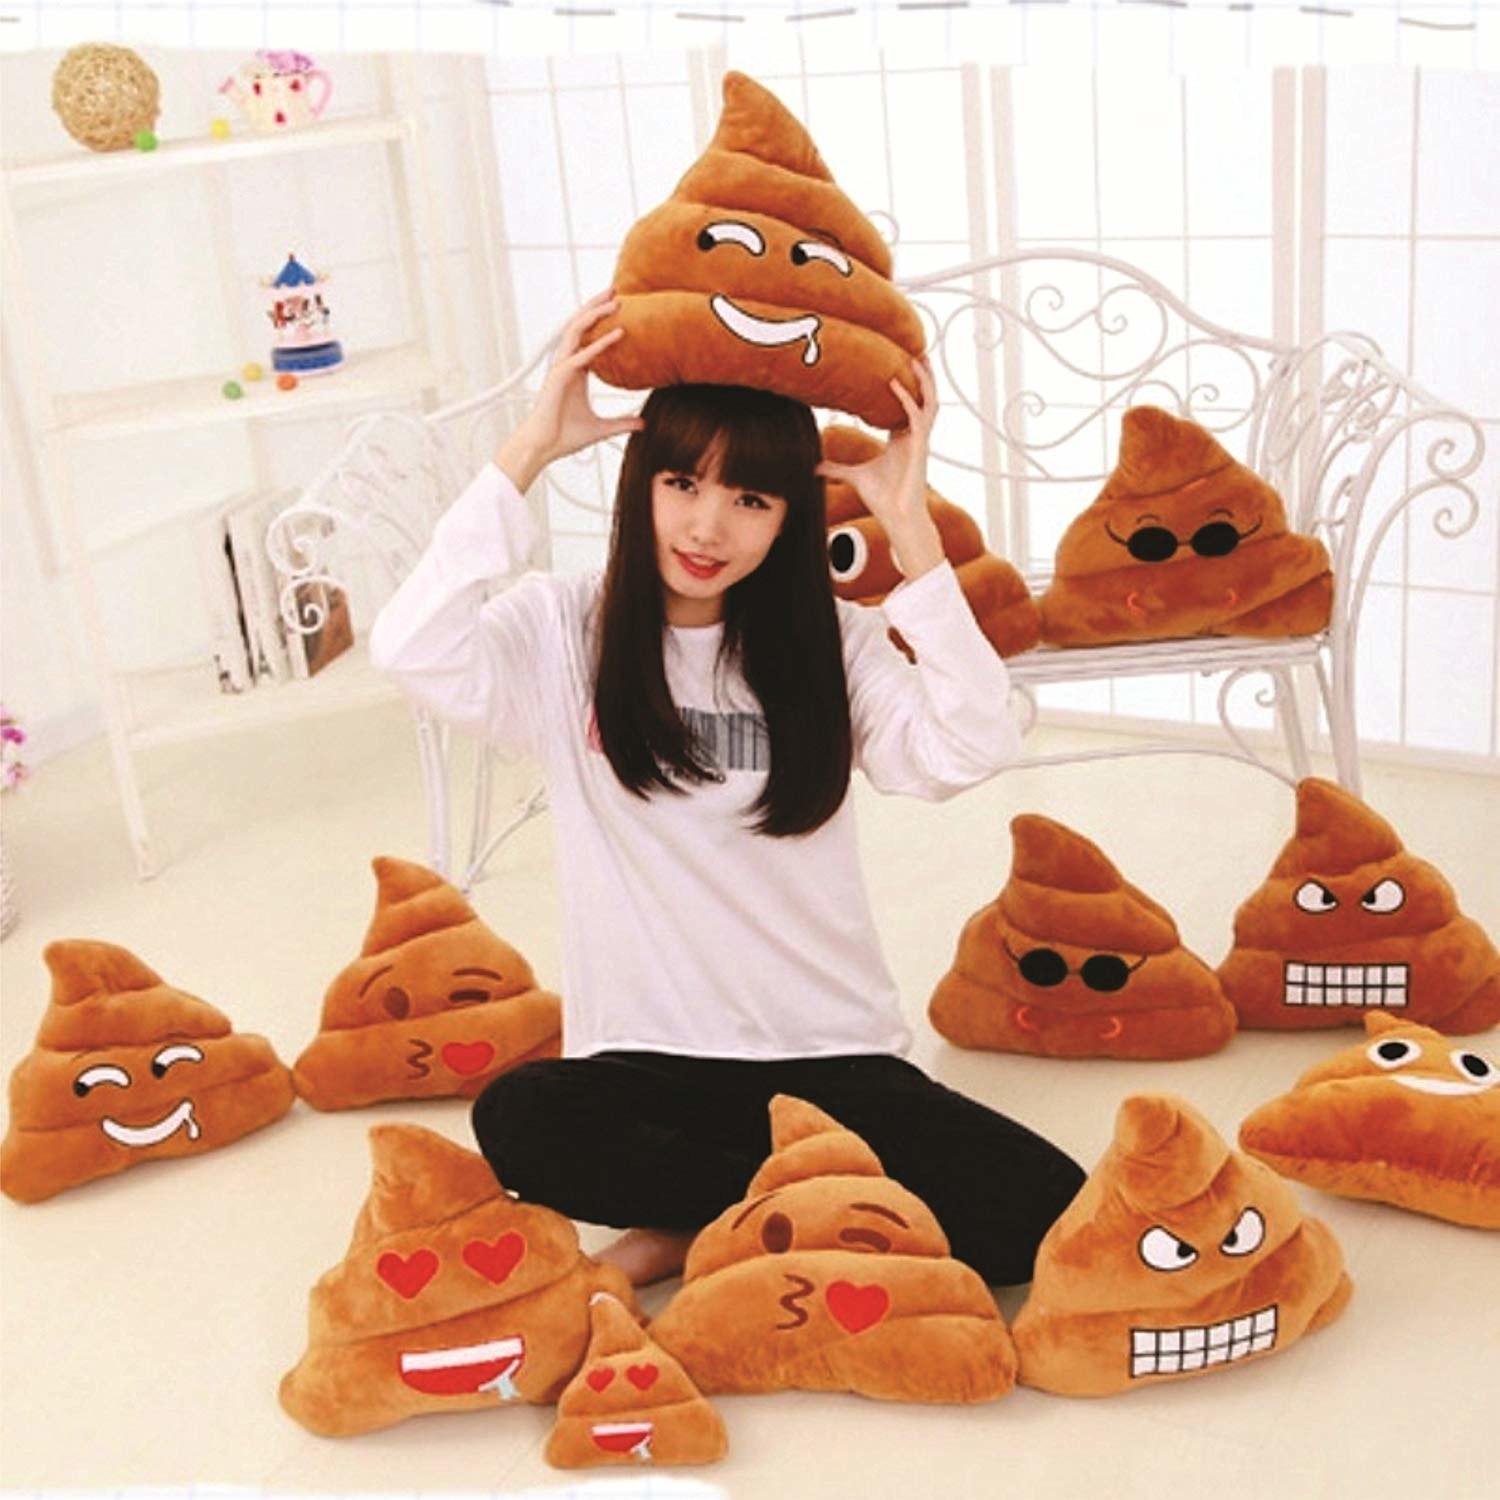 A person surrounded by poop-emoji cushions.